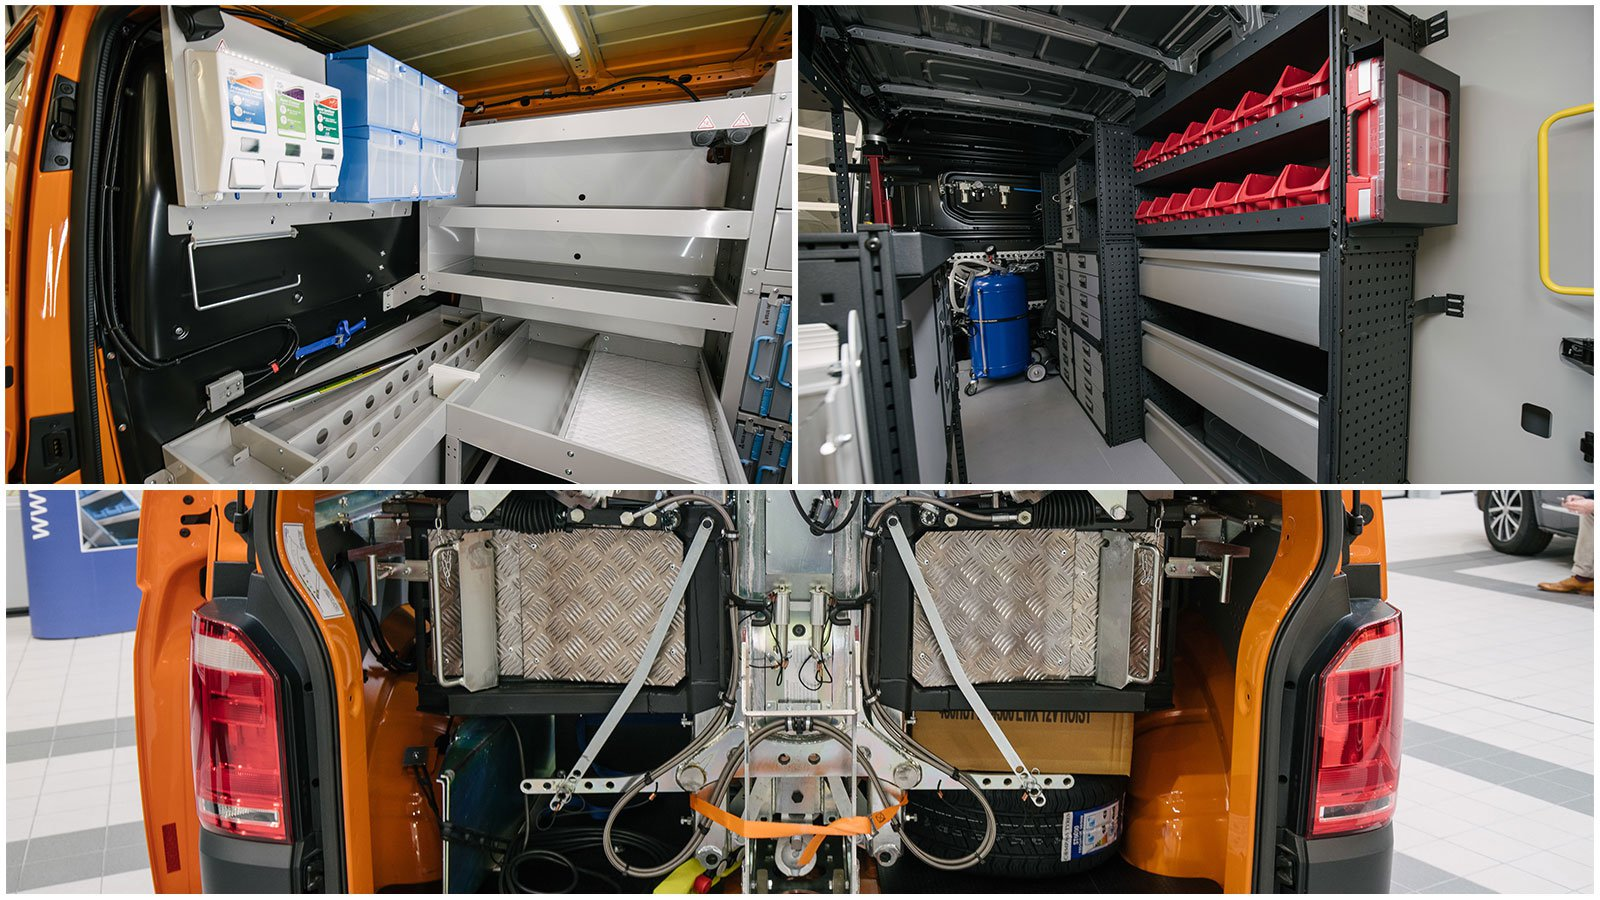 The interior of Volkswagen panel vans can easily be configured into a mobile workshop